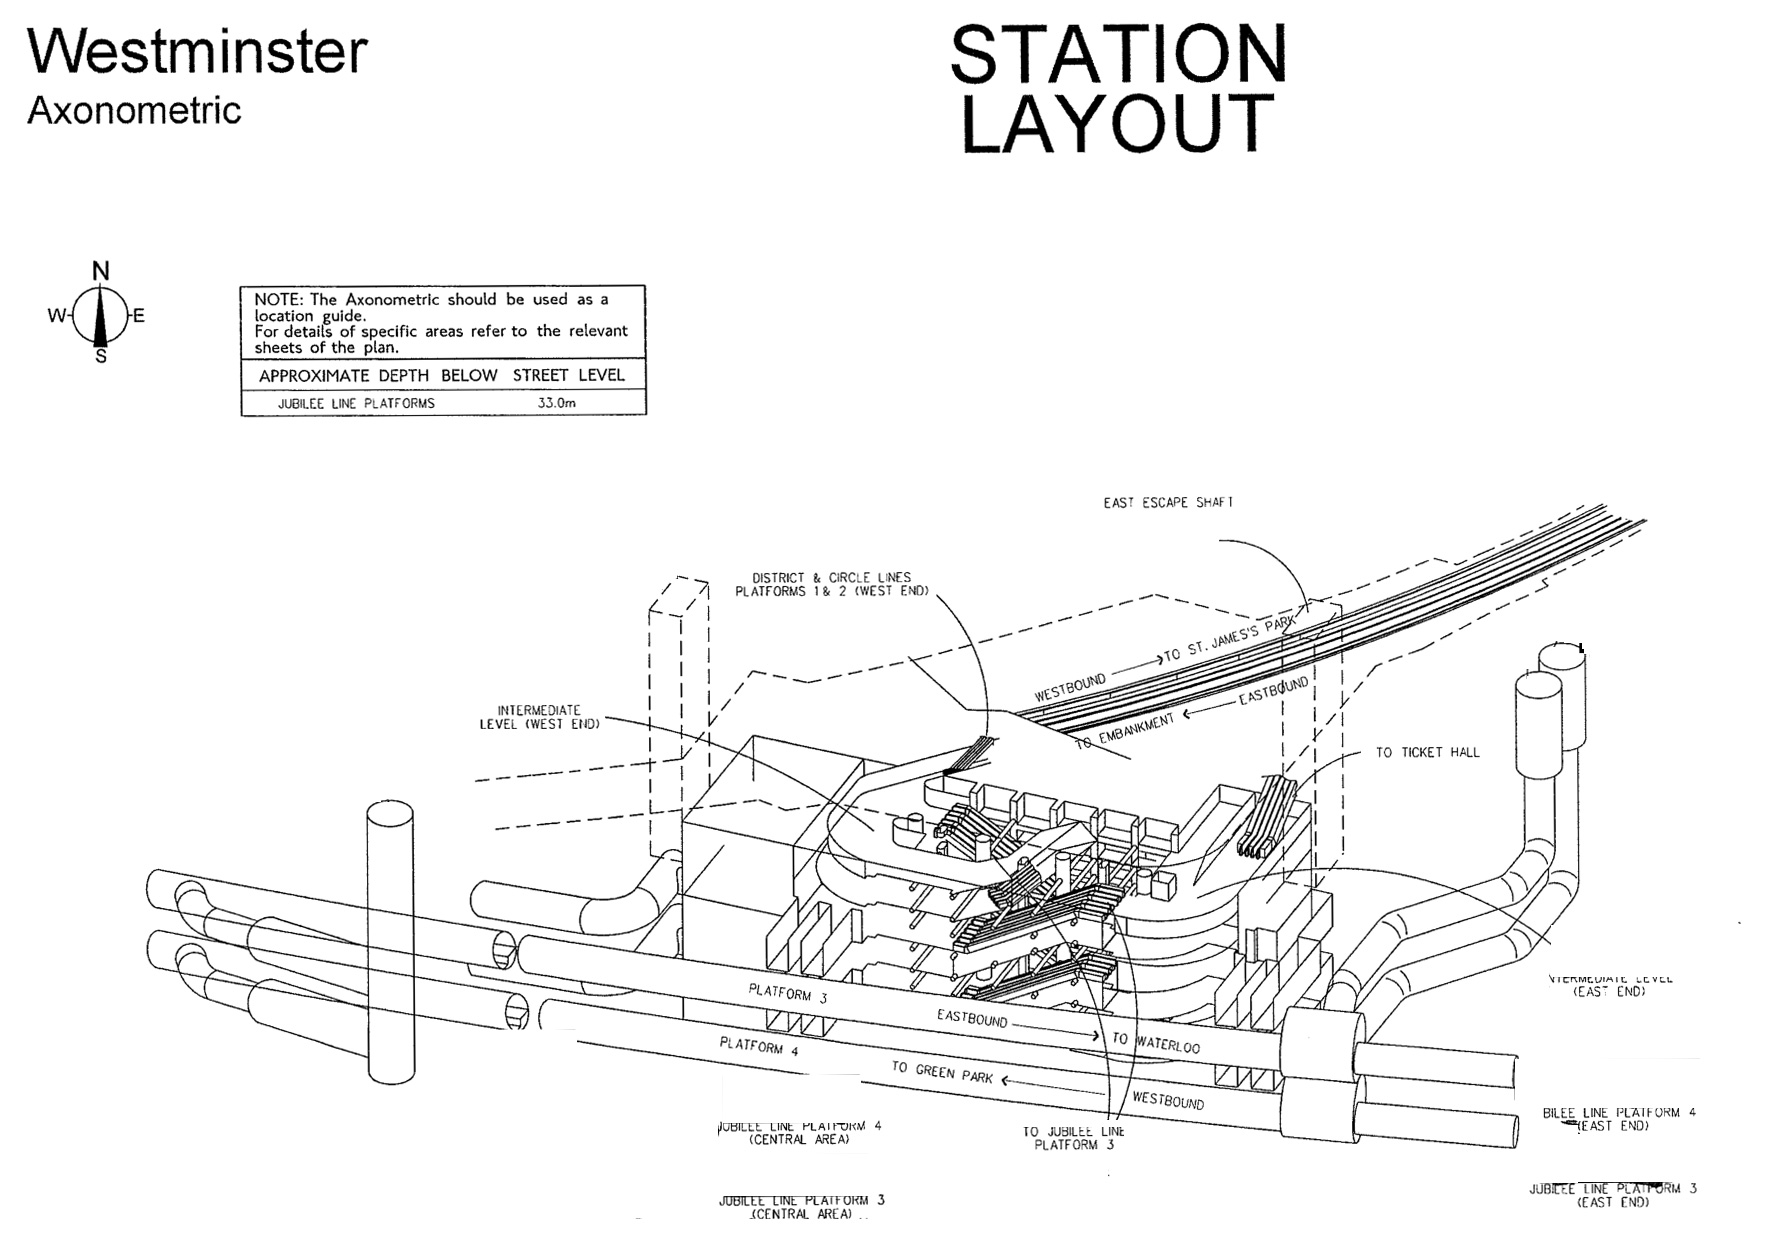 diagramme-3d-station-metro-londres-westminster-01